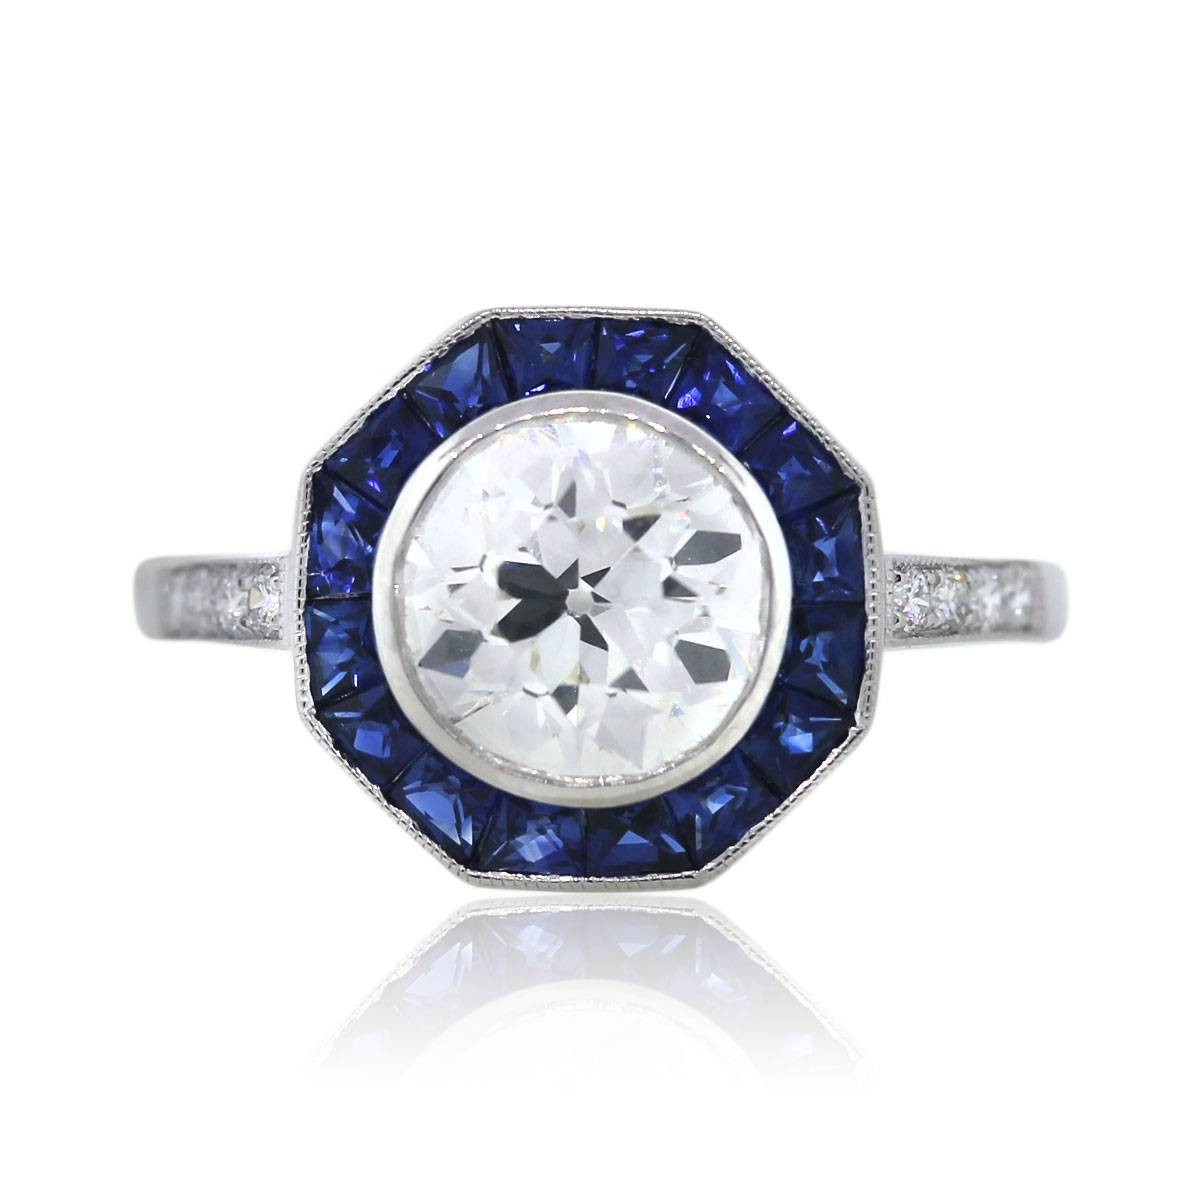 Platinum Octagonal Art Deco Diamond And Sapphire Engagement Ring Intended For Diamond And Sapphire Wedding Rings (View 10 of 15)